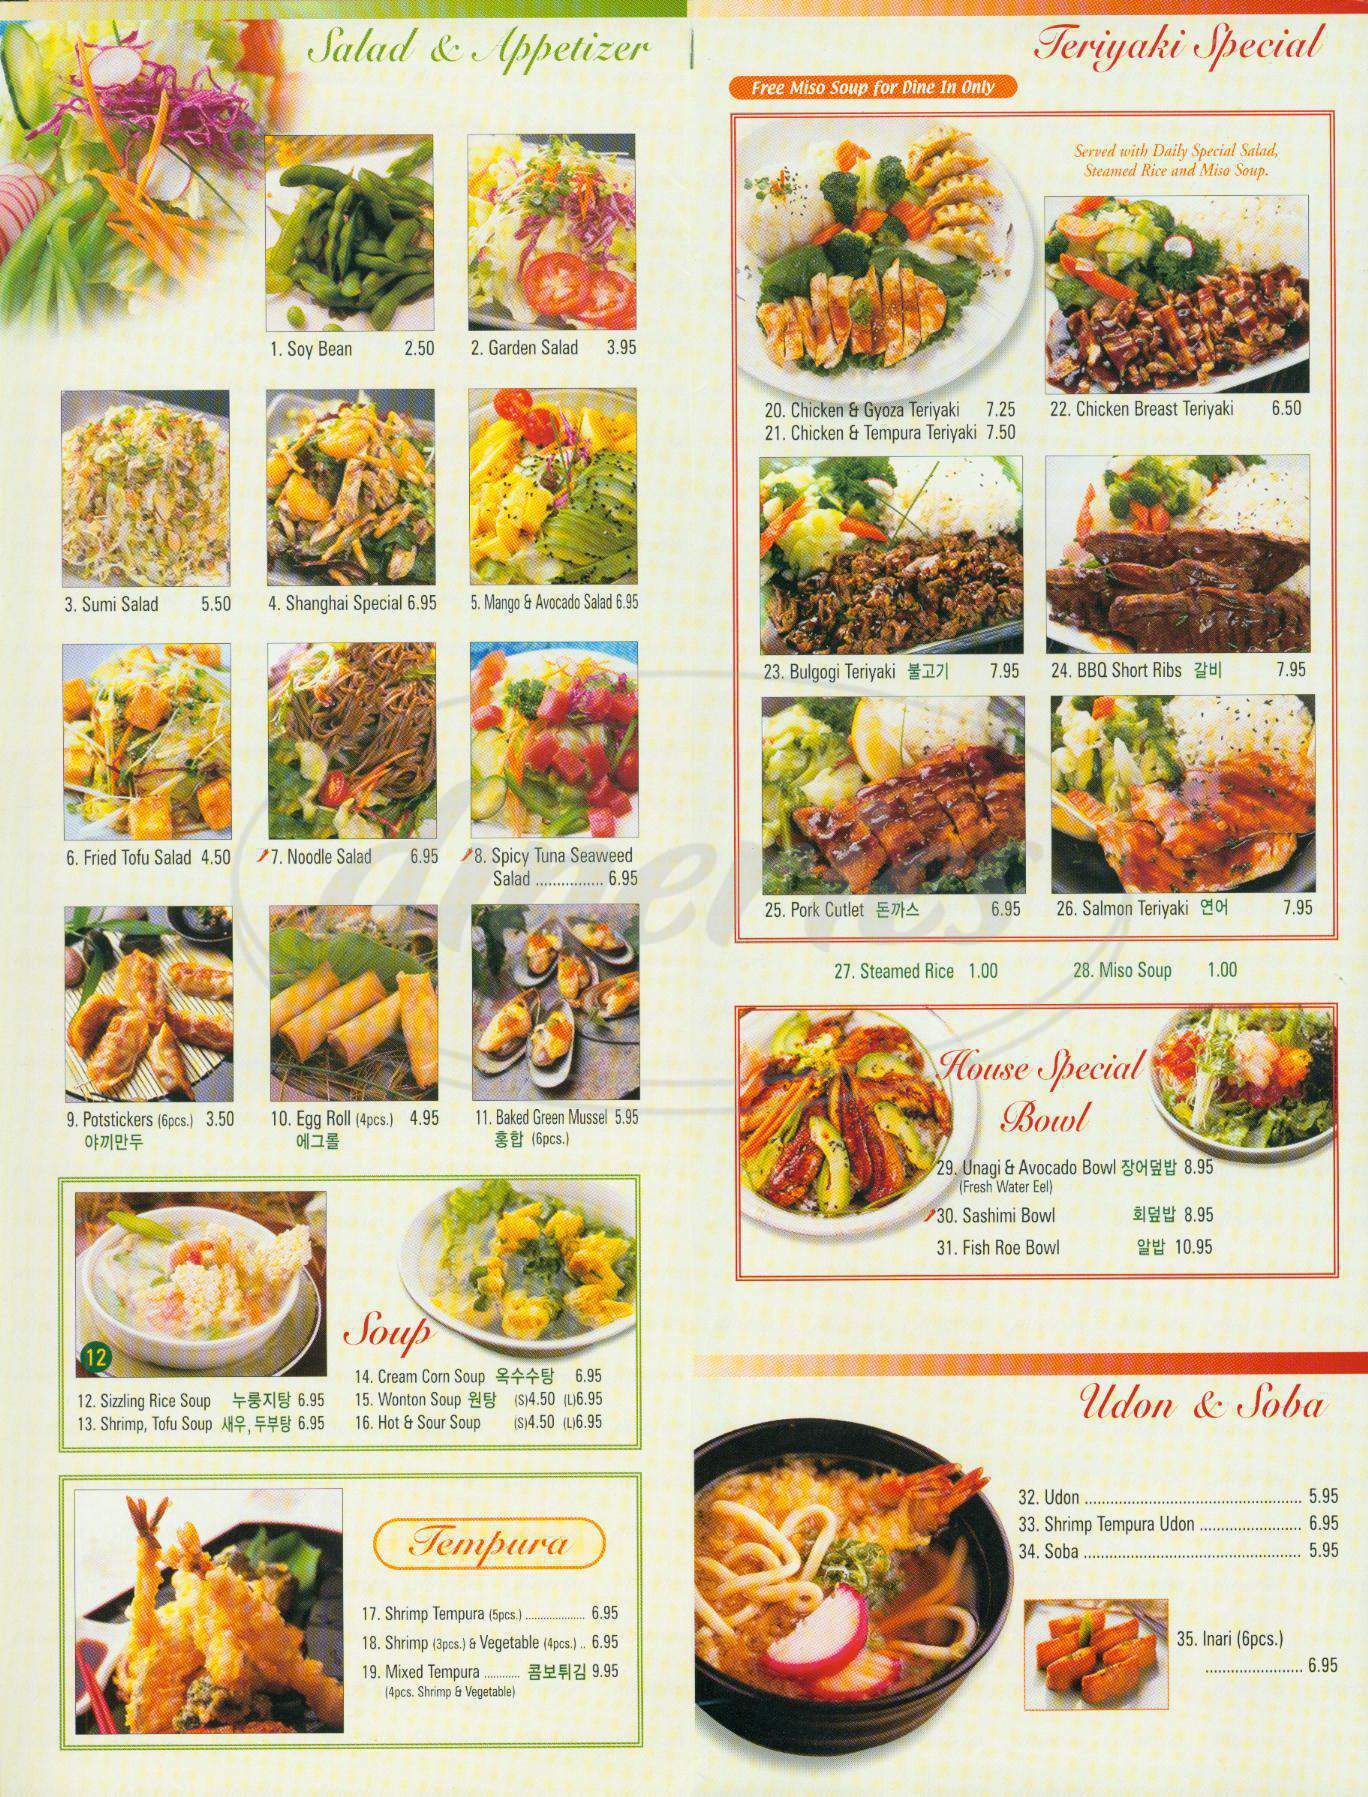 menu for Shanghai Maki Wok